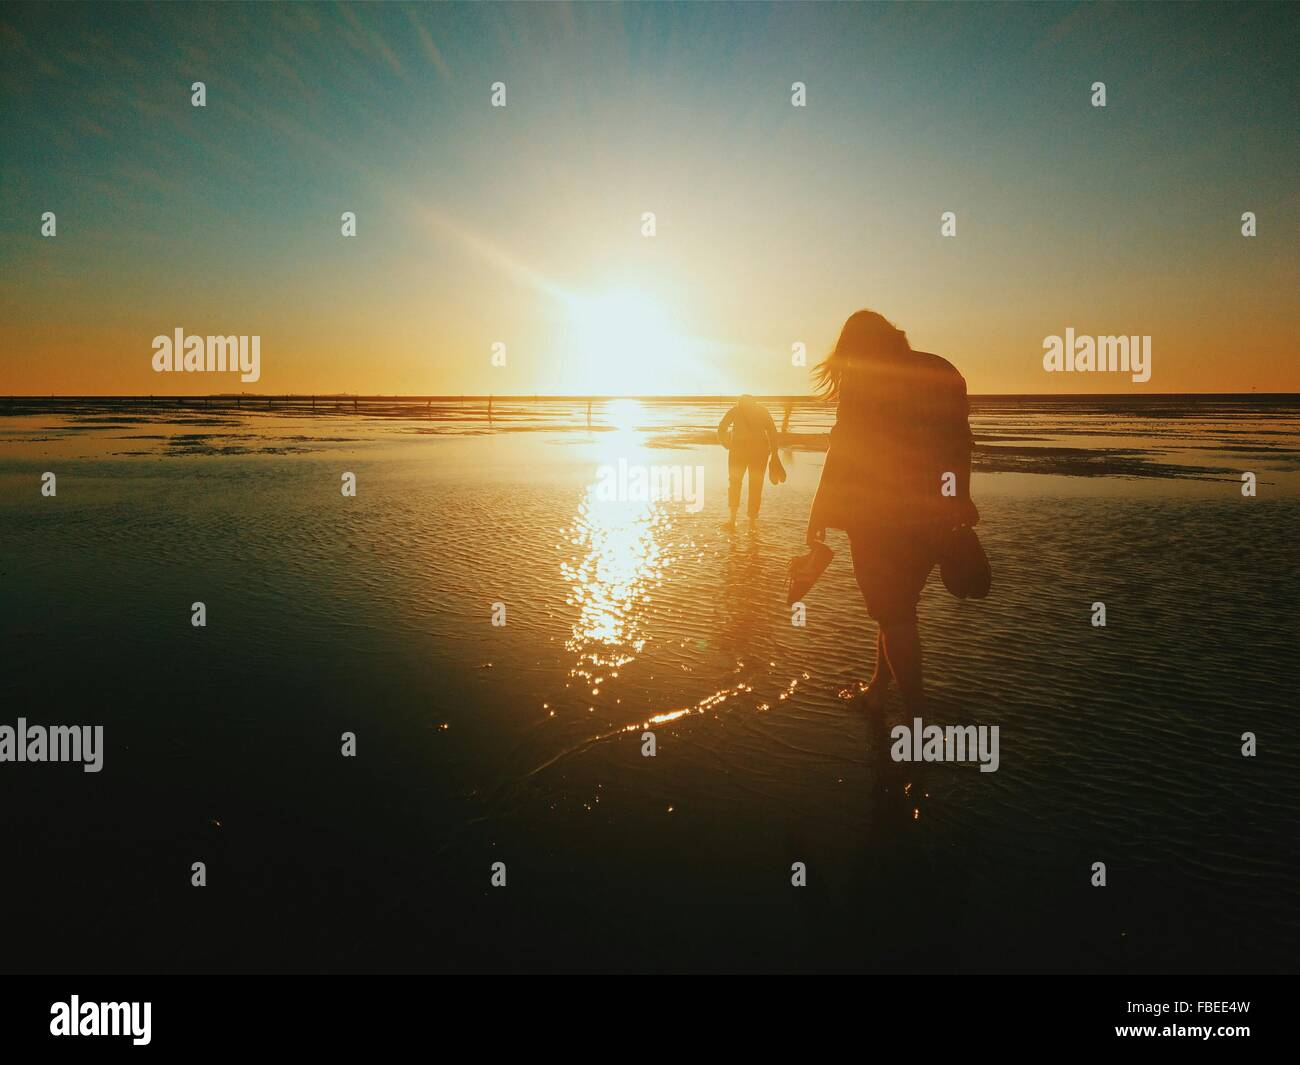 Silhouette People Walking On Beach At Sunset Stock Photo